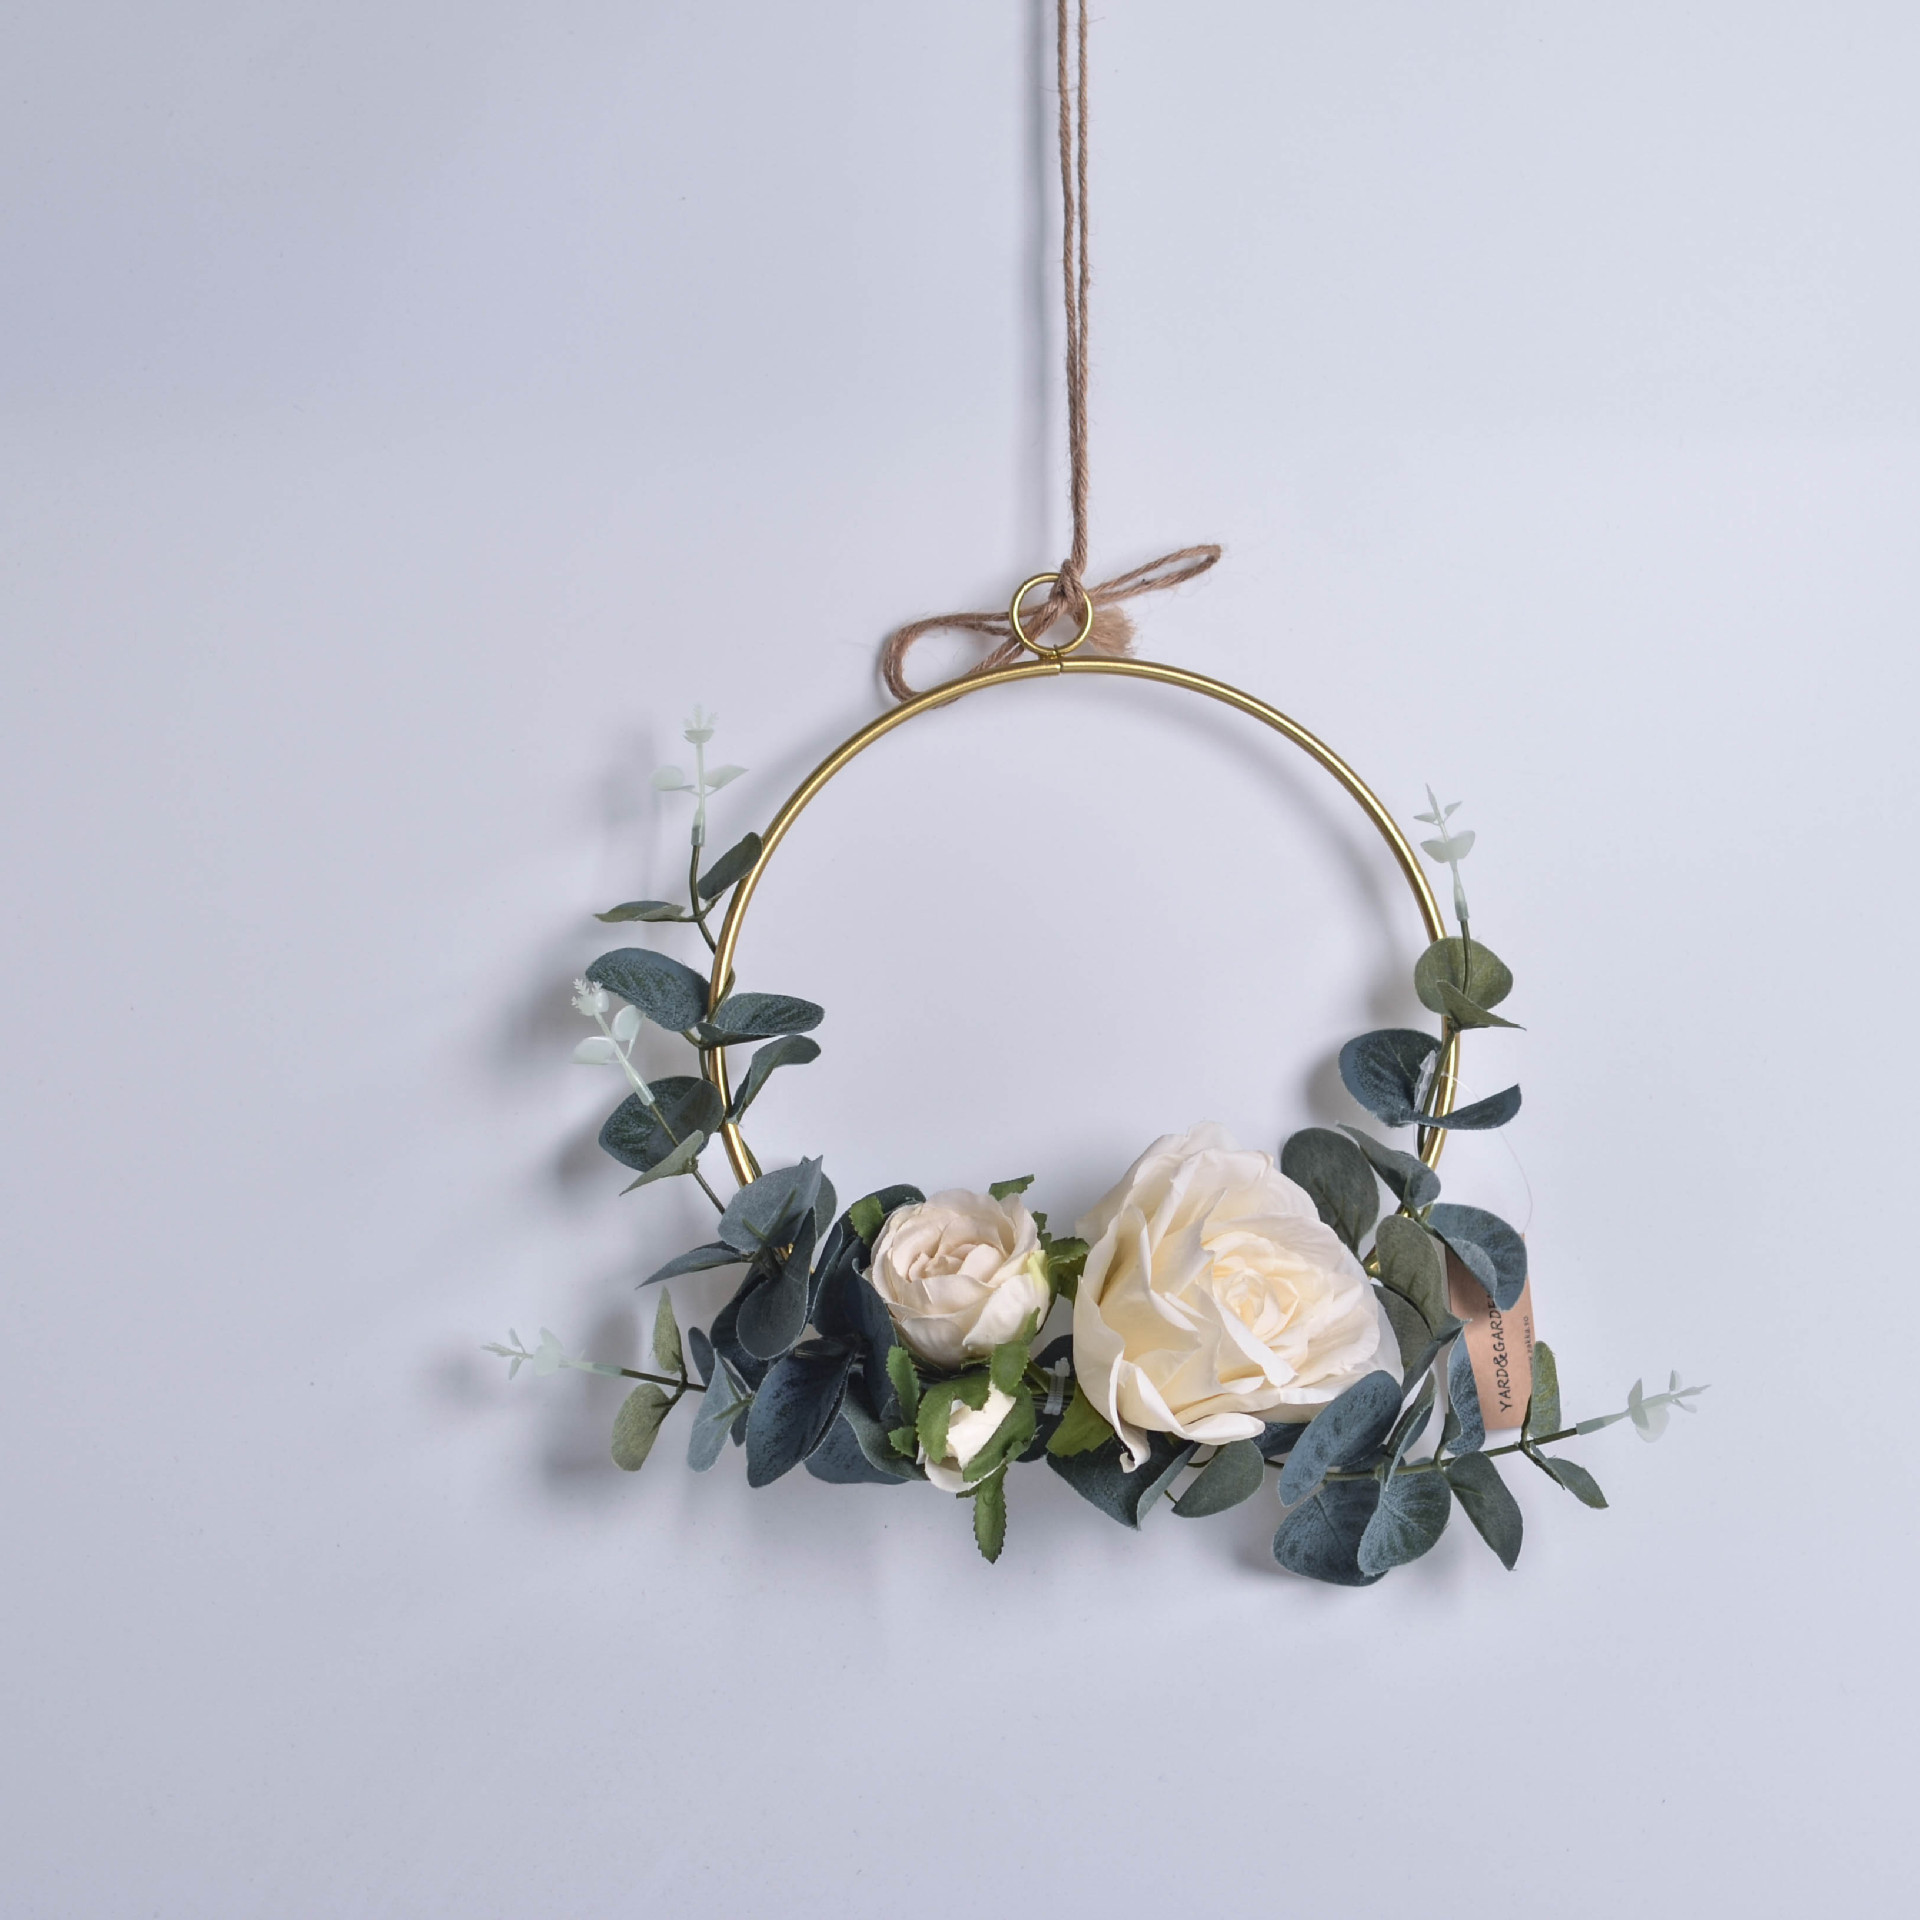 Geometric Metal Garland Home Hanging Artificial Rose Flower Ring Holder Wall Hoop Wreath Wall Hanging Farmhouse Decor